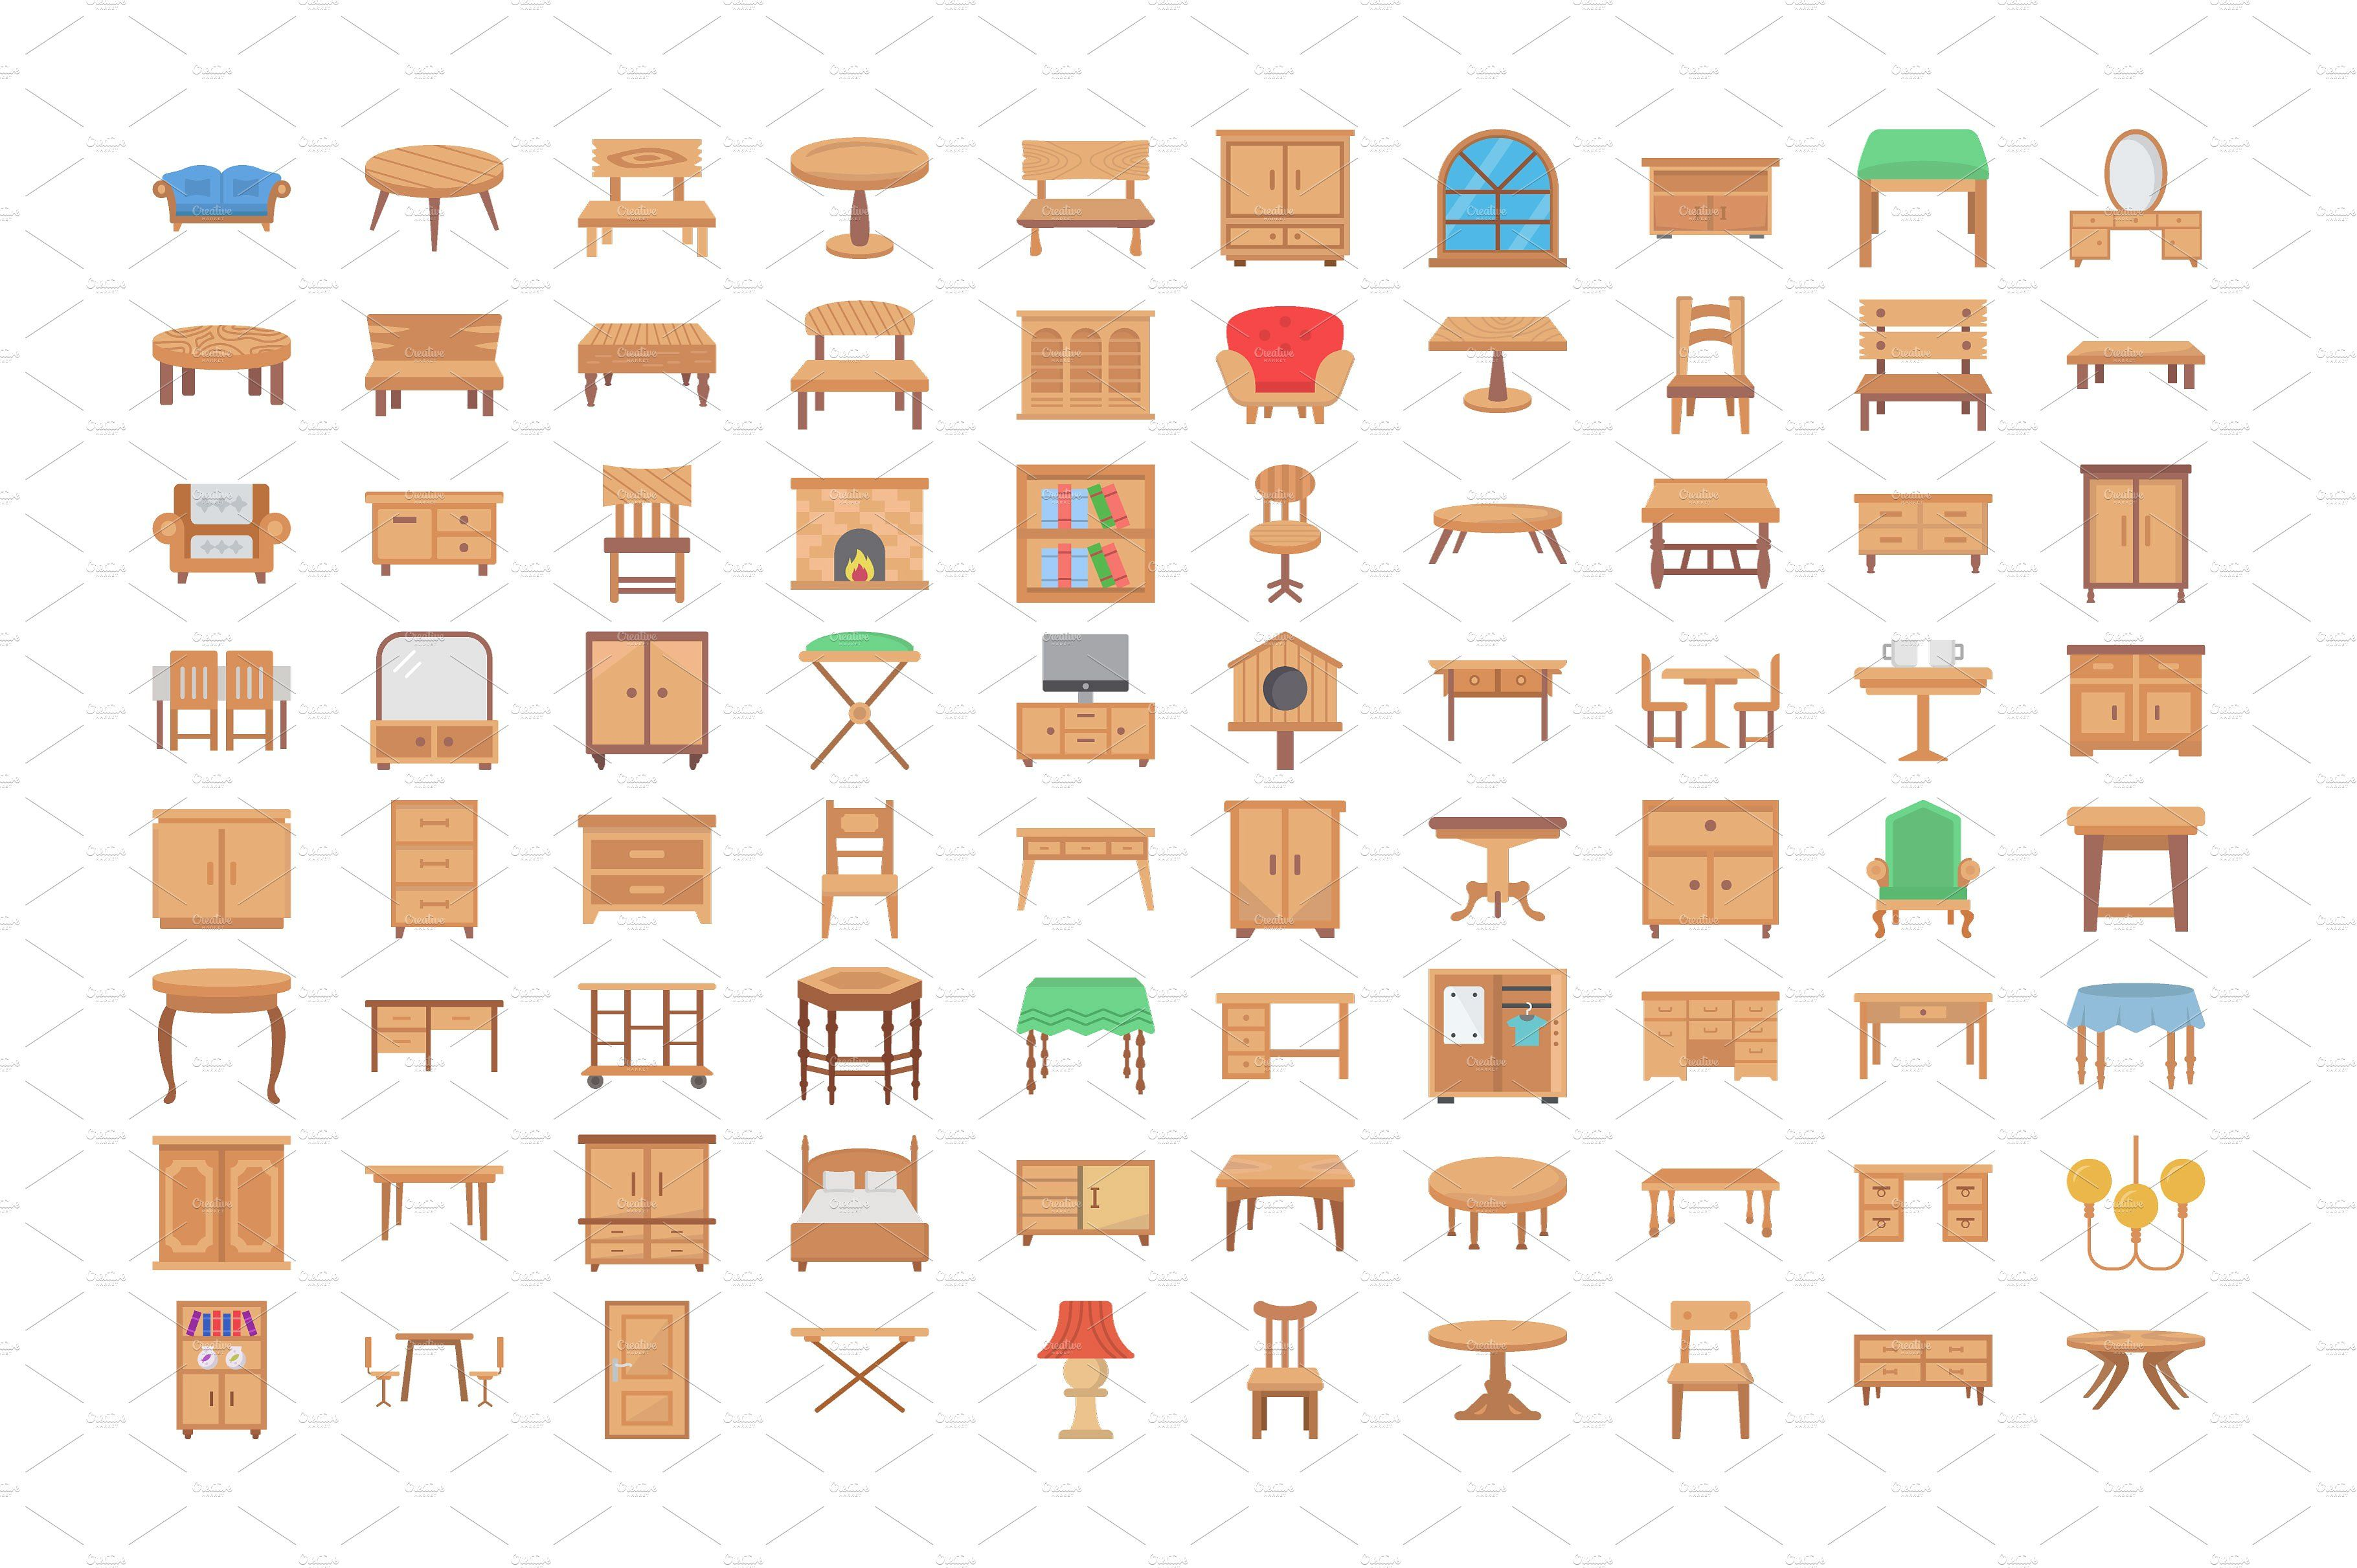 80 Wooden Furniture Vector Icons Wooden Furniture Showcase